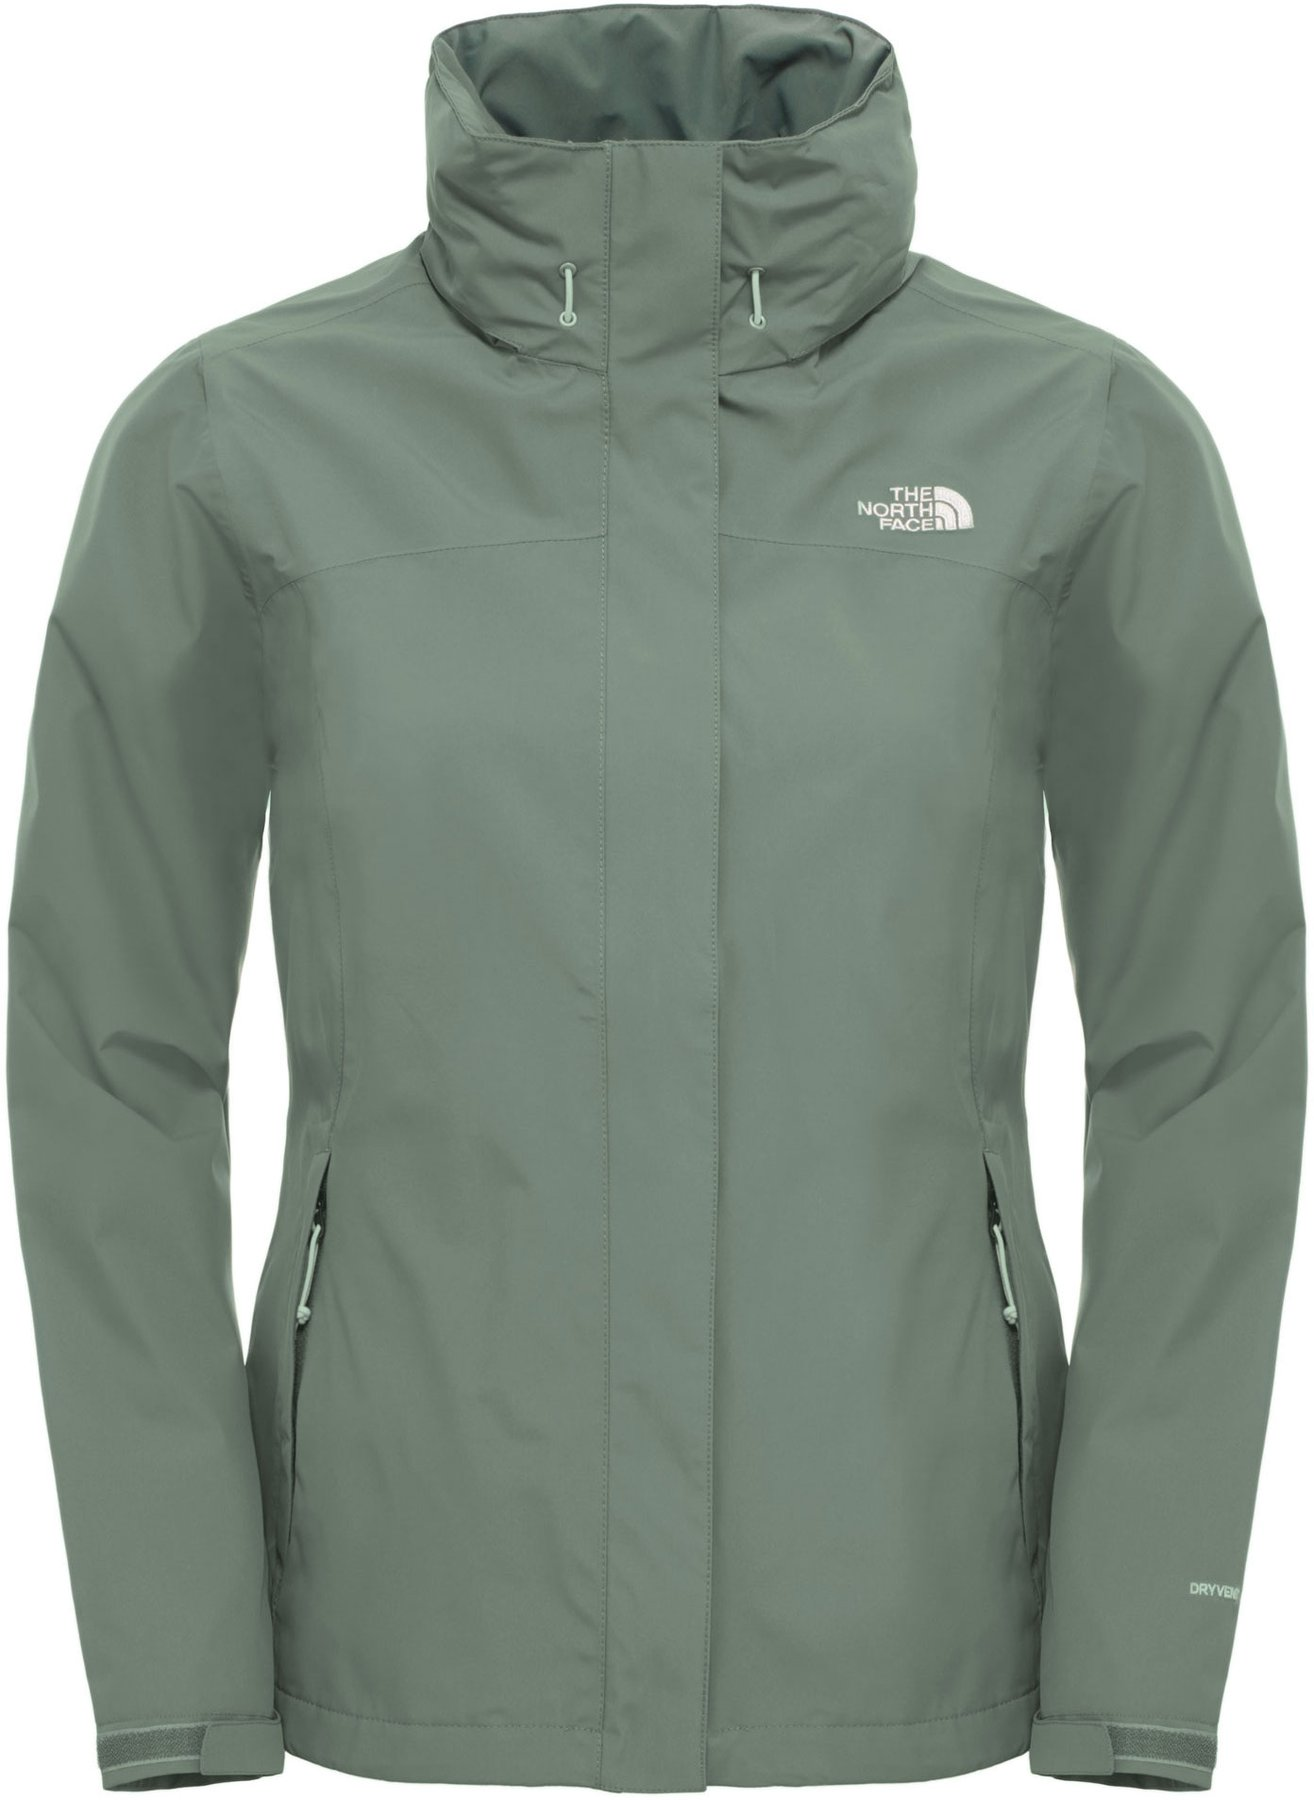 cheap for discount 91587 b905d The North Face Jacke Damen